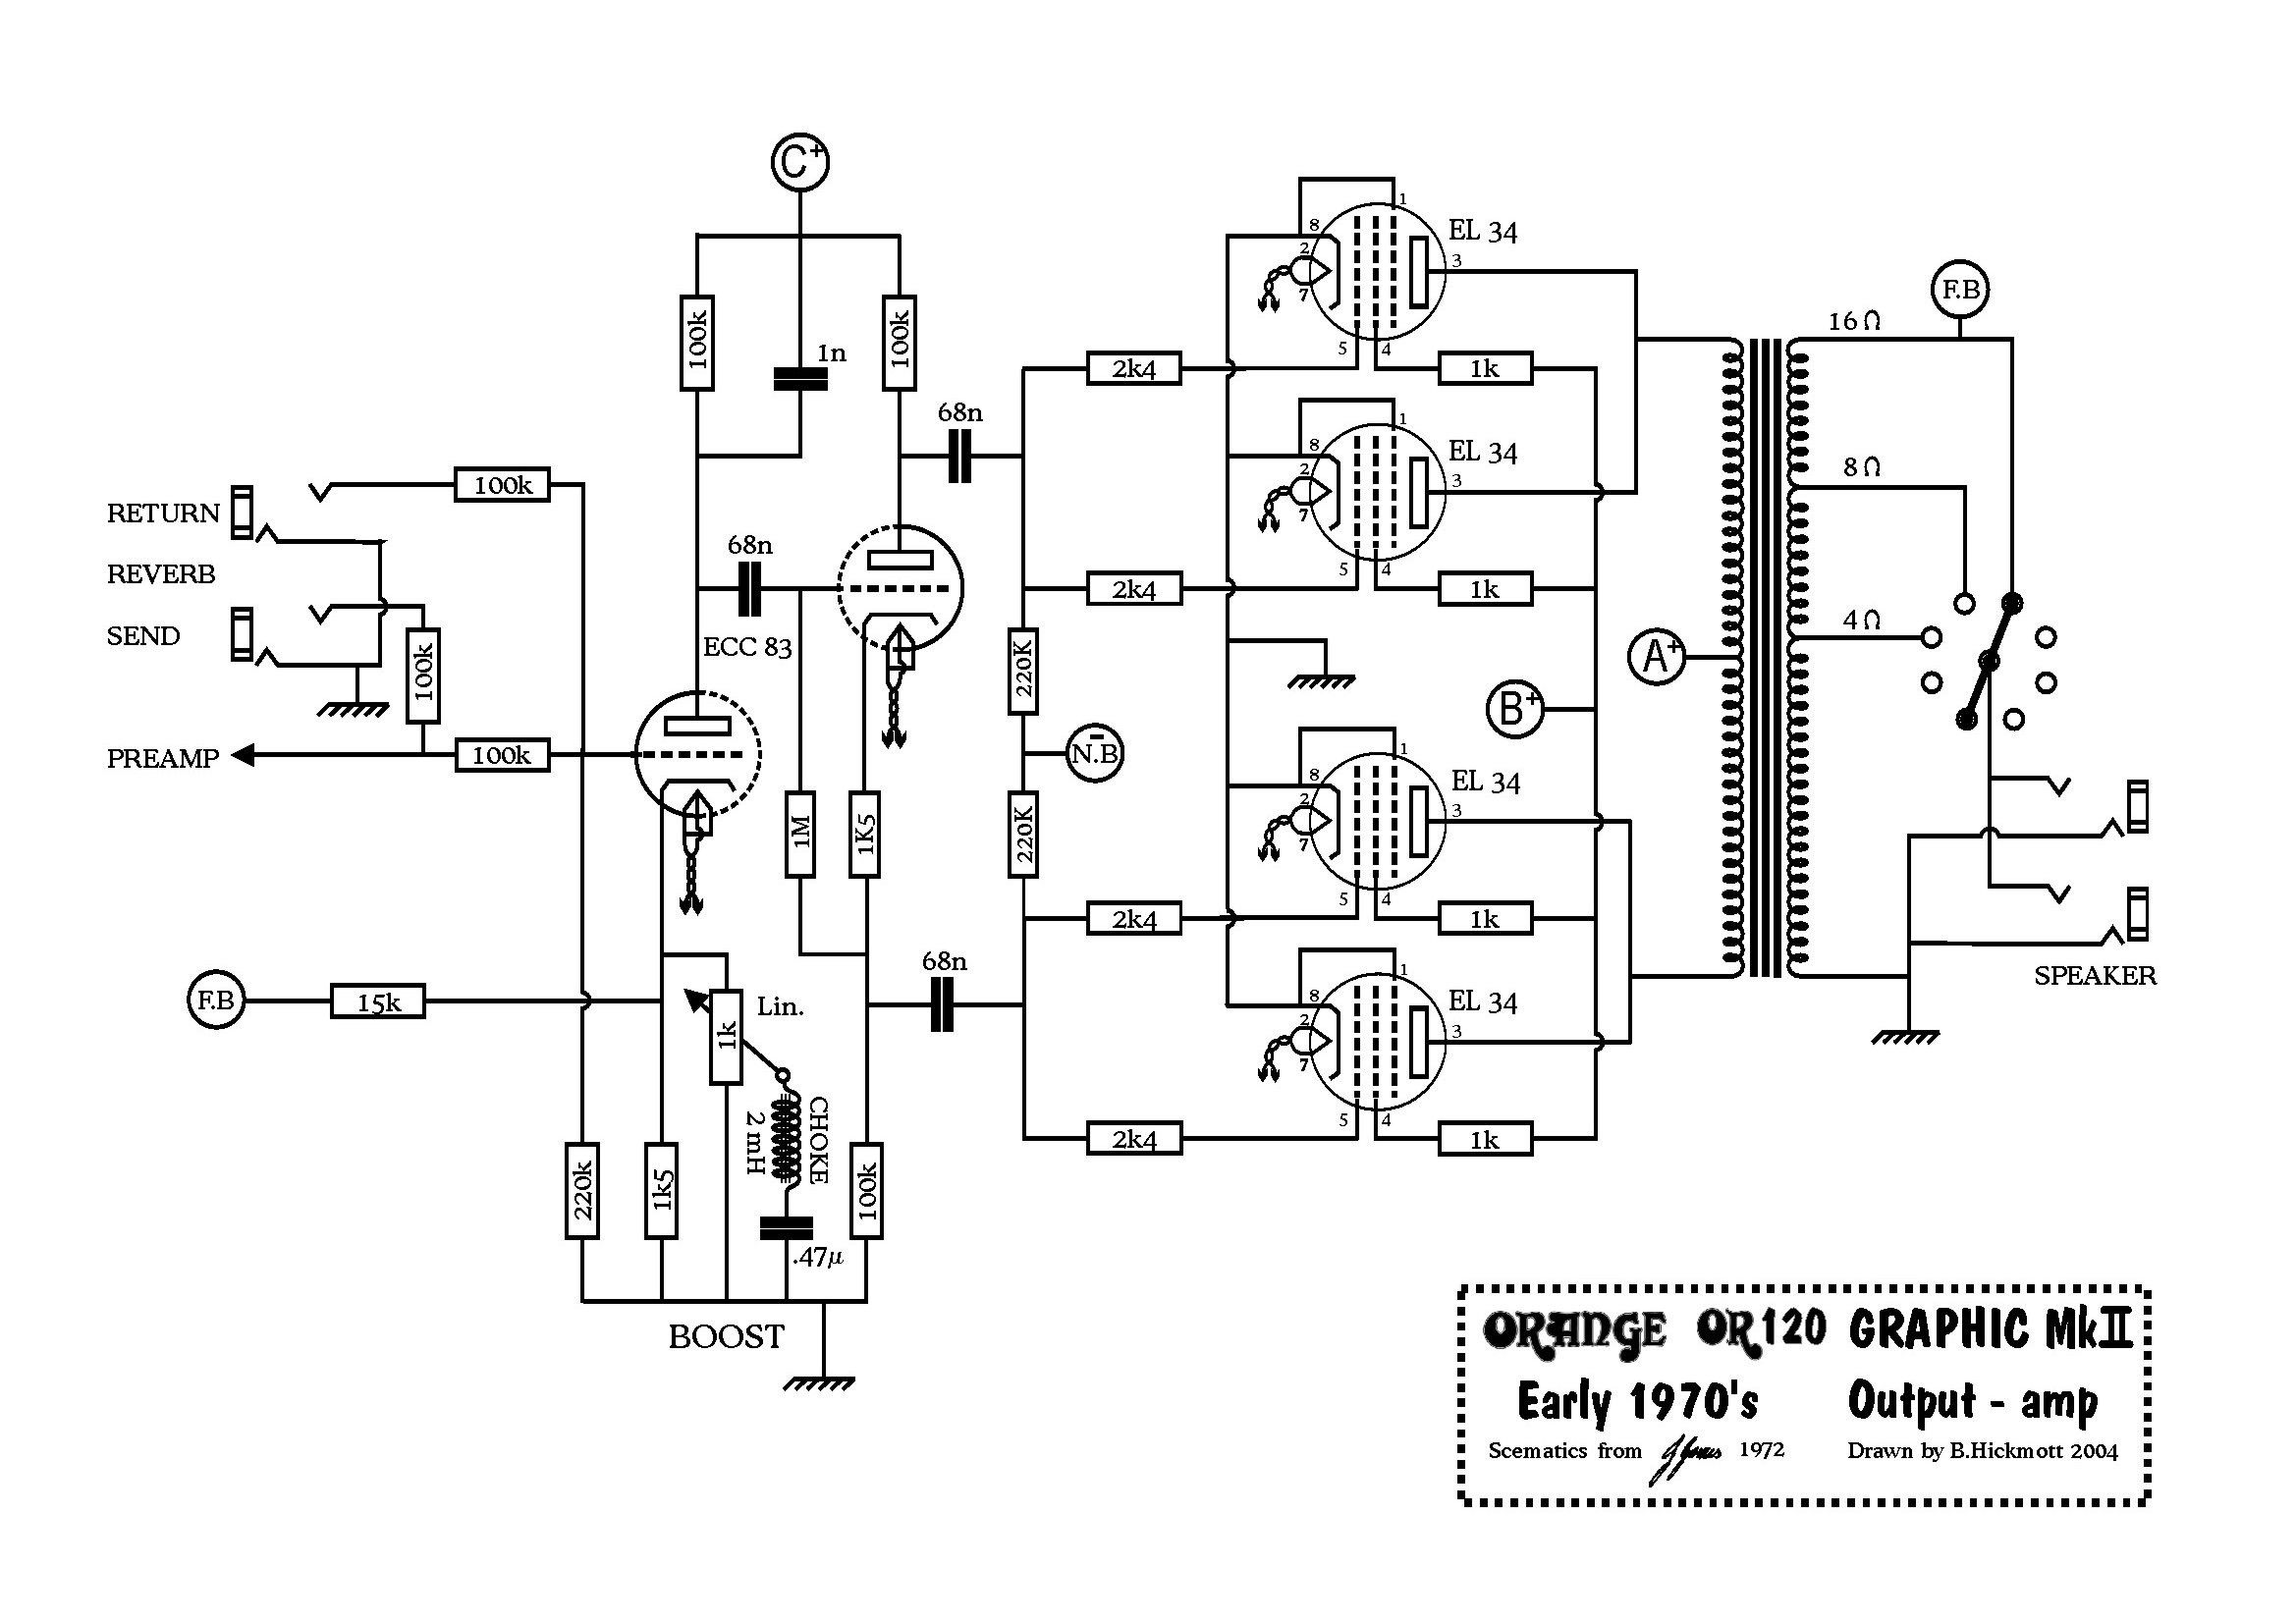 guitar amplifier circuit diagram with pcb layout new the orange amp mods page [ 2338 x 1653 Pixel ]